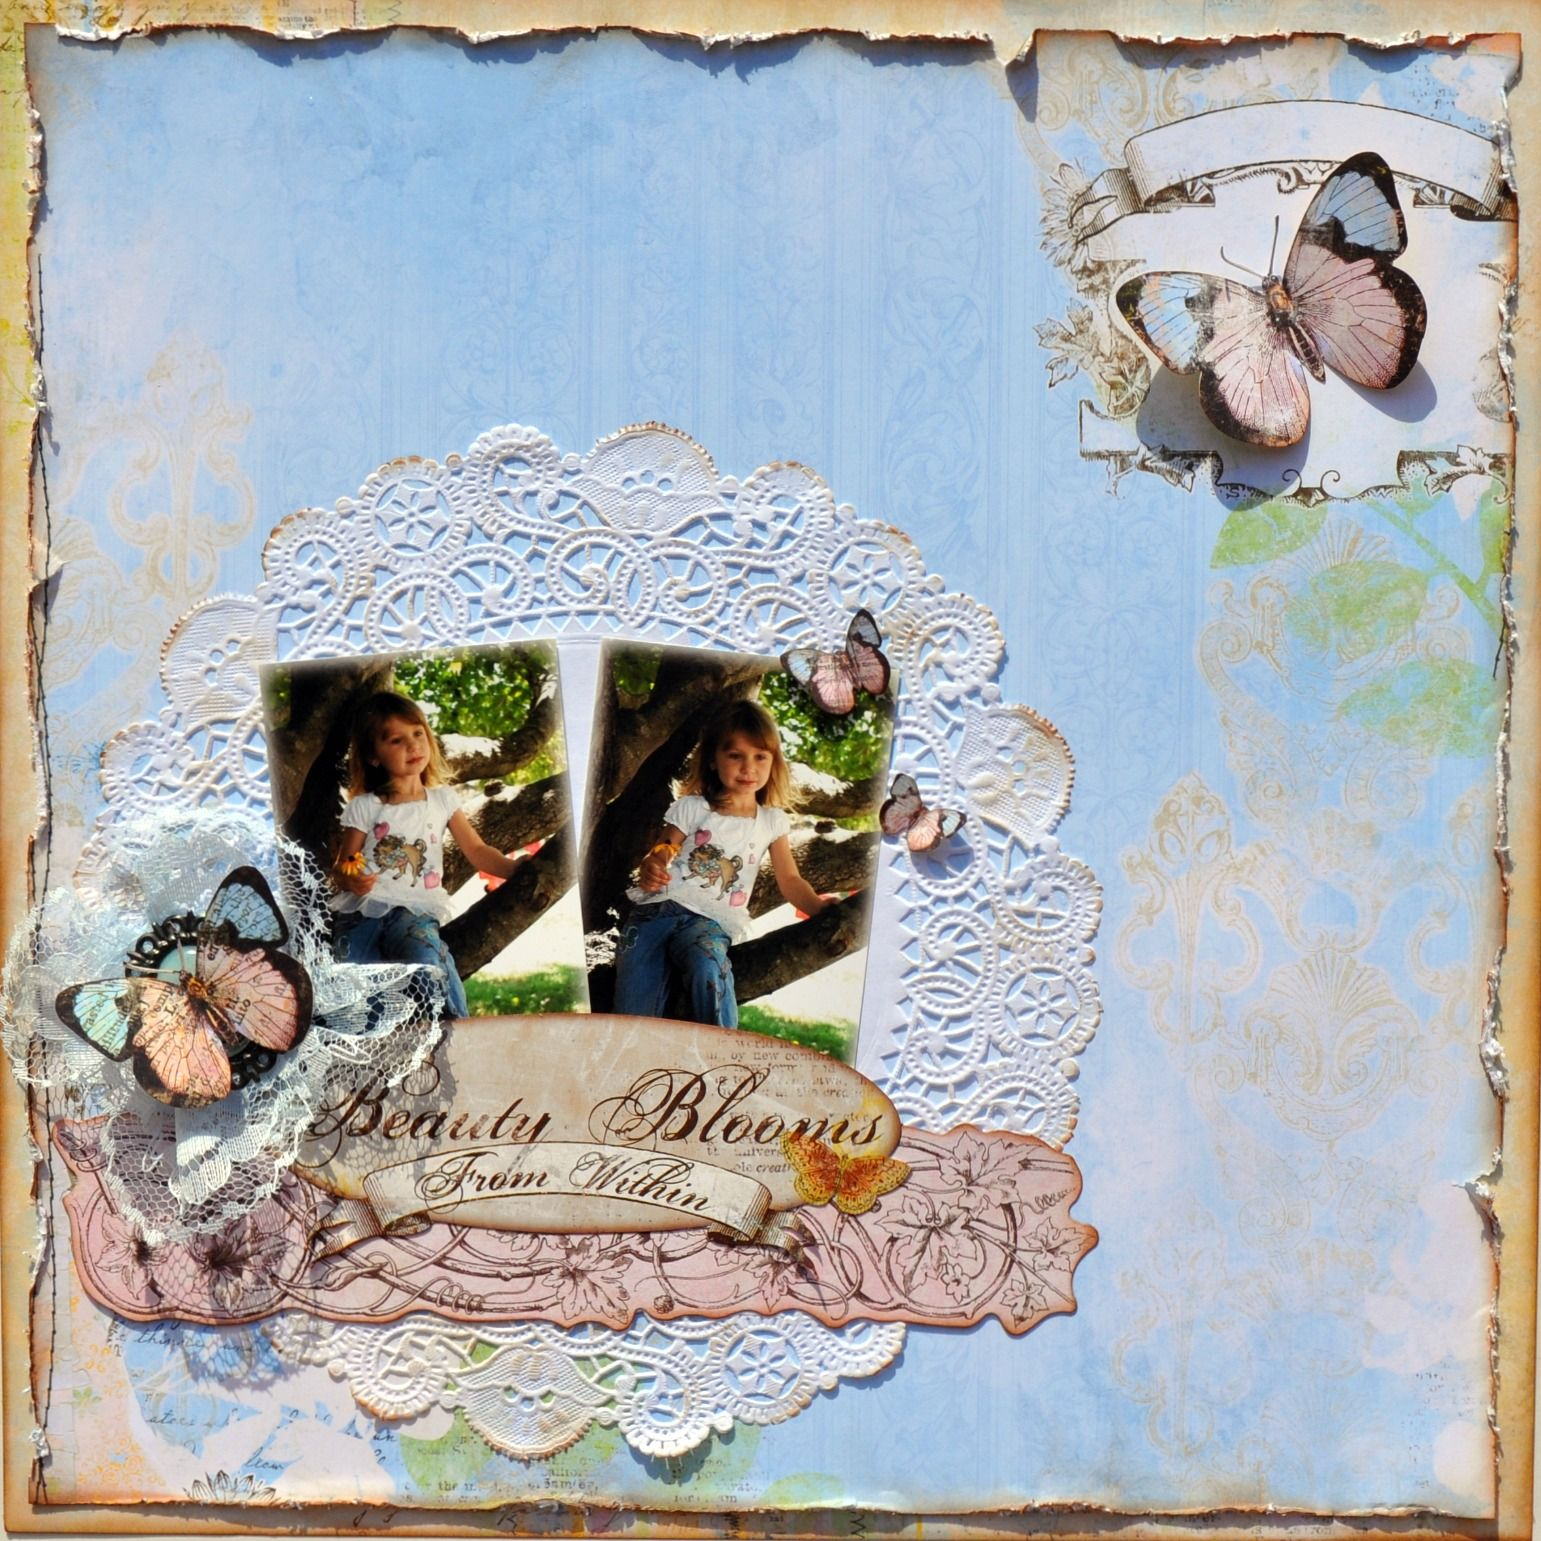 Beauty Blooms from Within ~My Creative Scrapbook~ - Scrapbook.com